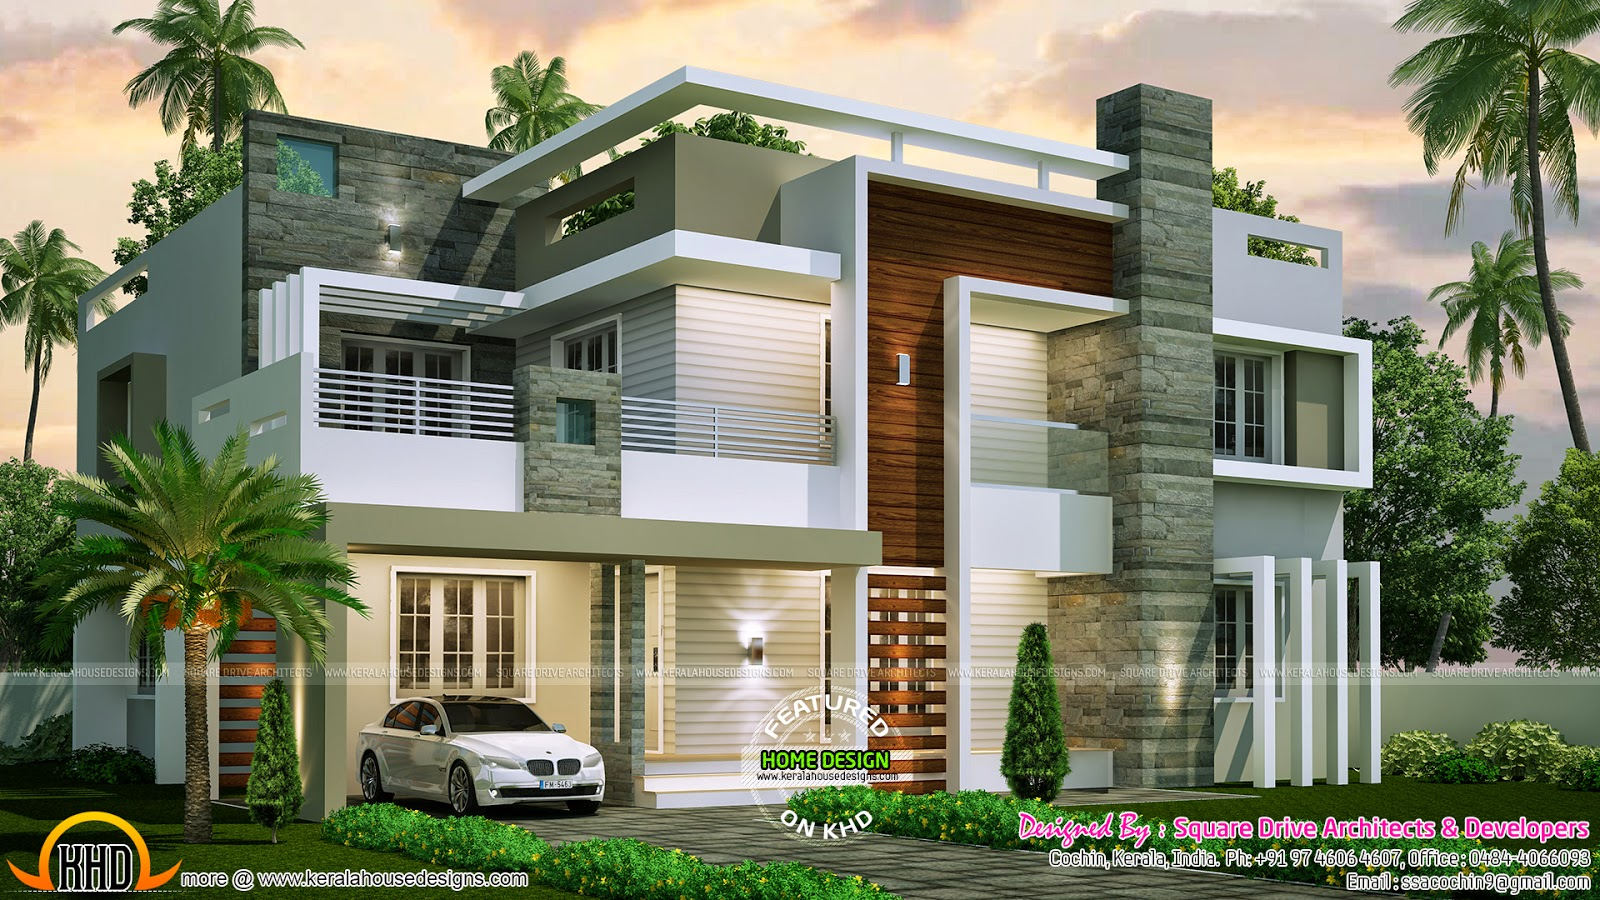 4 bedroom contemporary home design kerala home design for Contemporary home decor